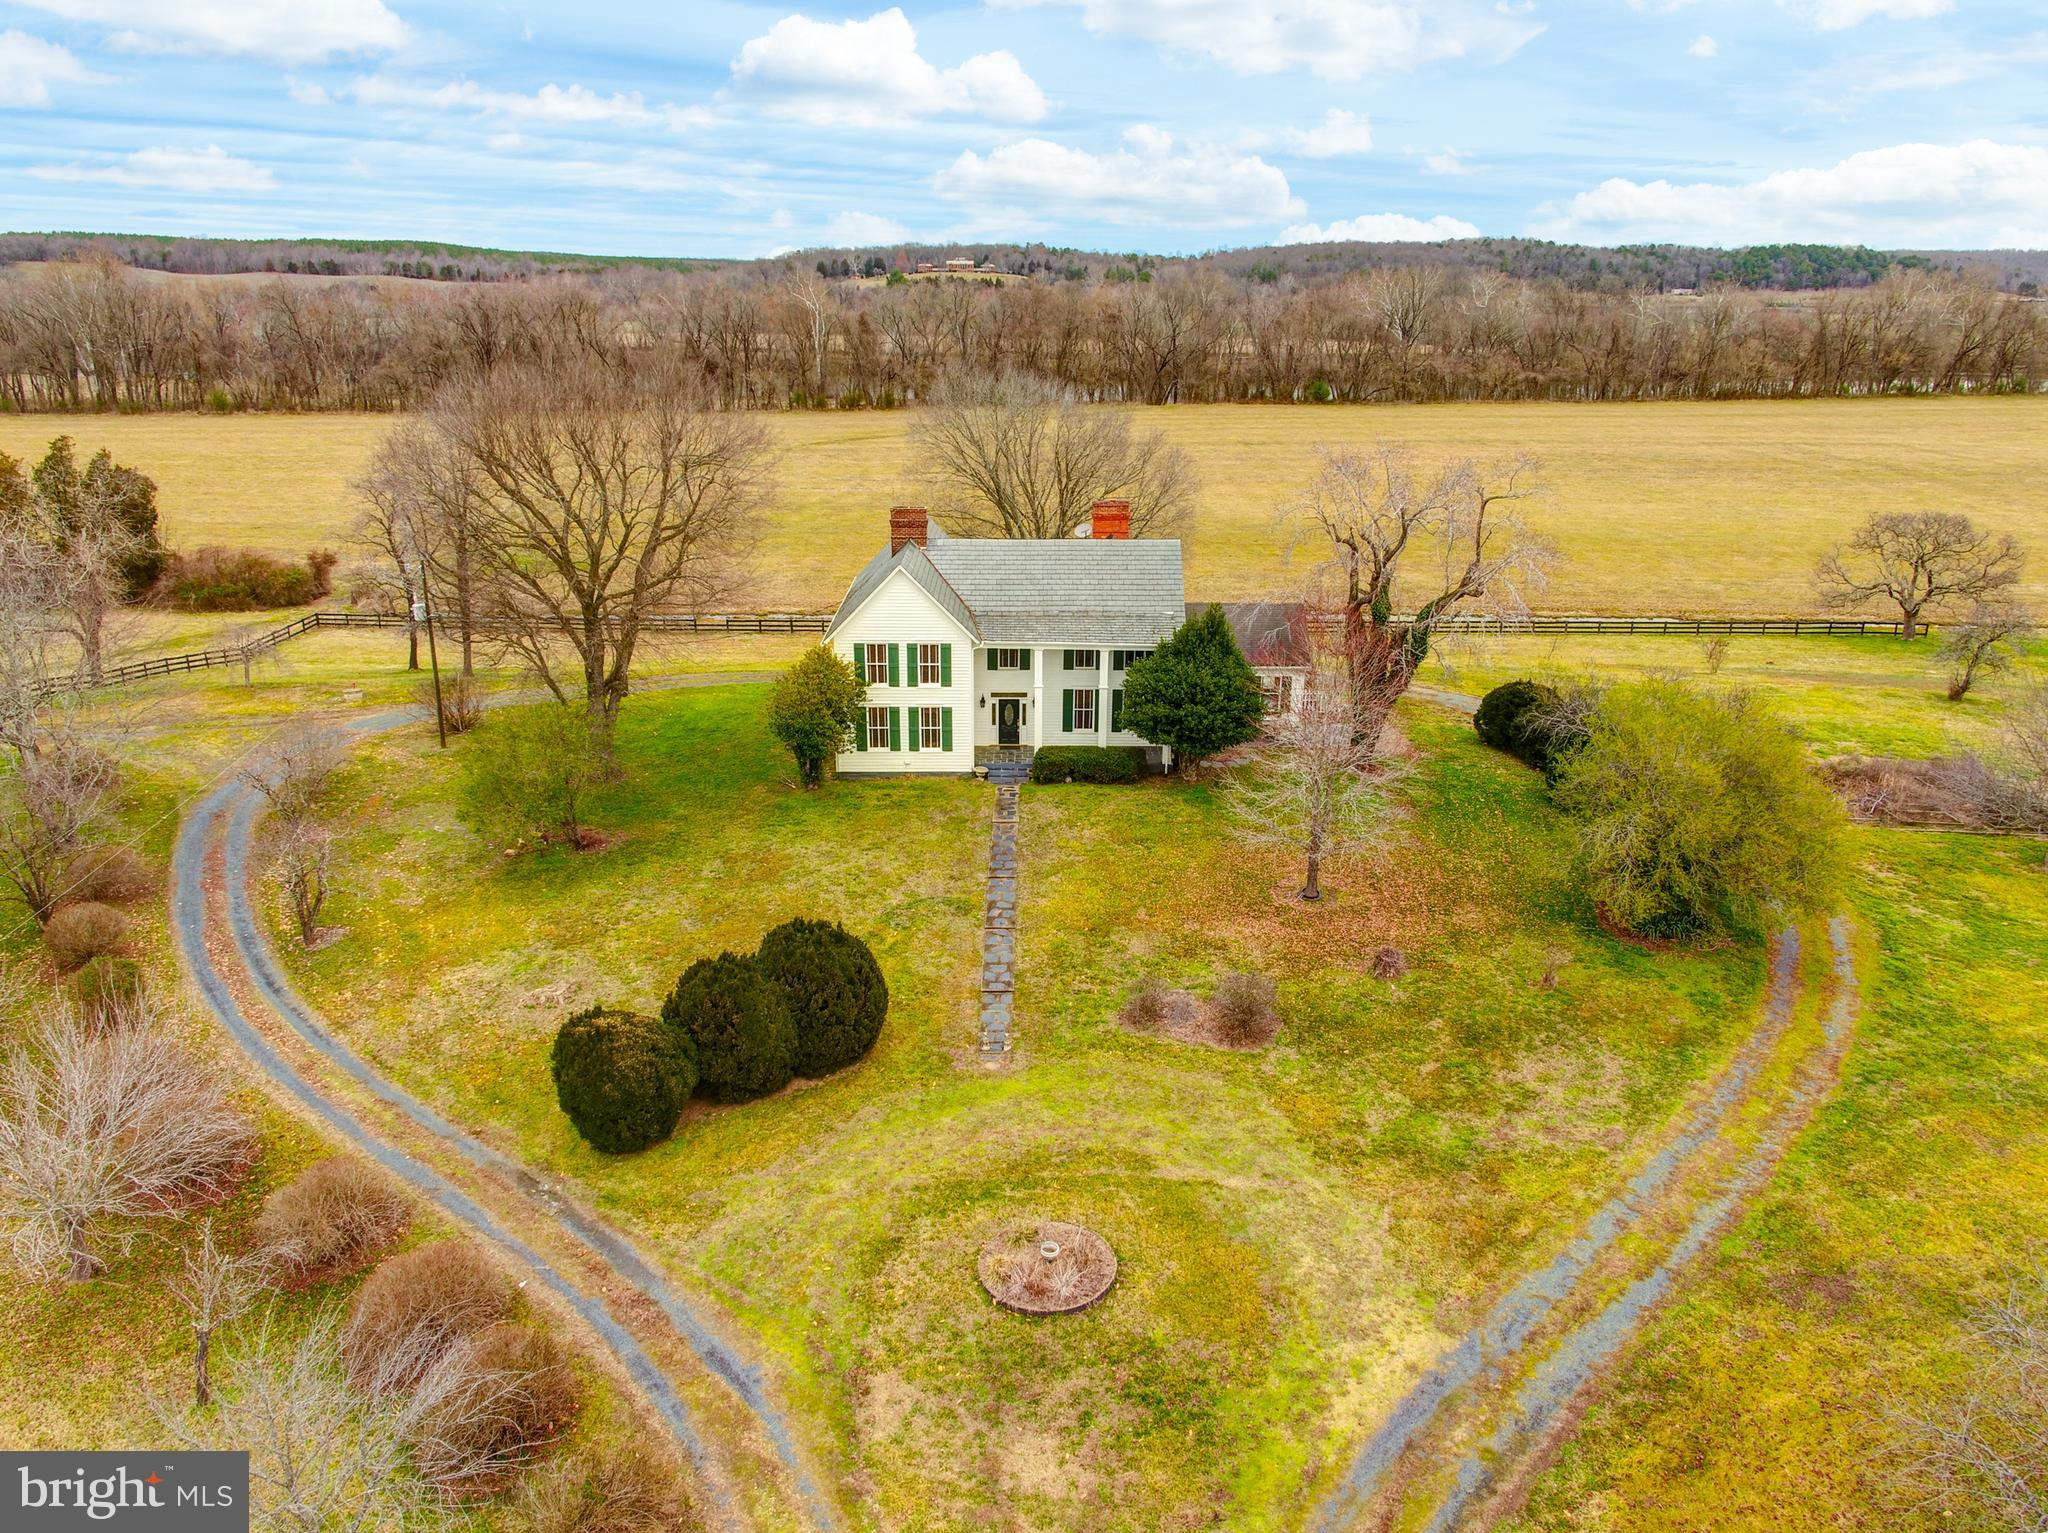 10335 W BRIDGEPORT ROAD, ARVONIA, VA 23004